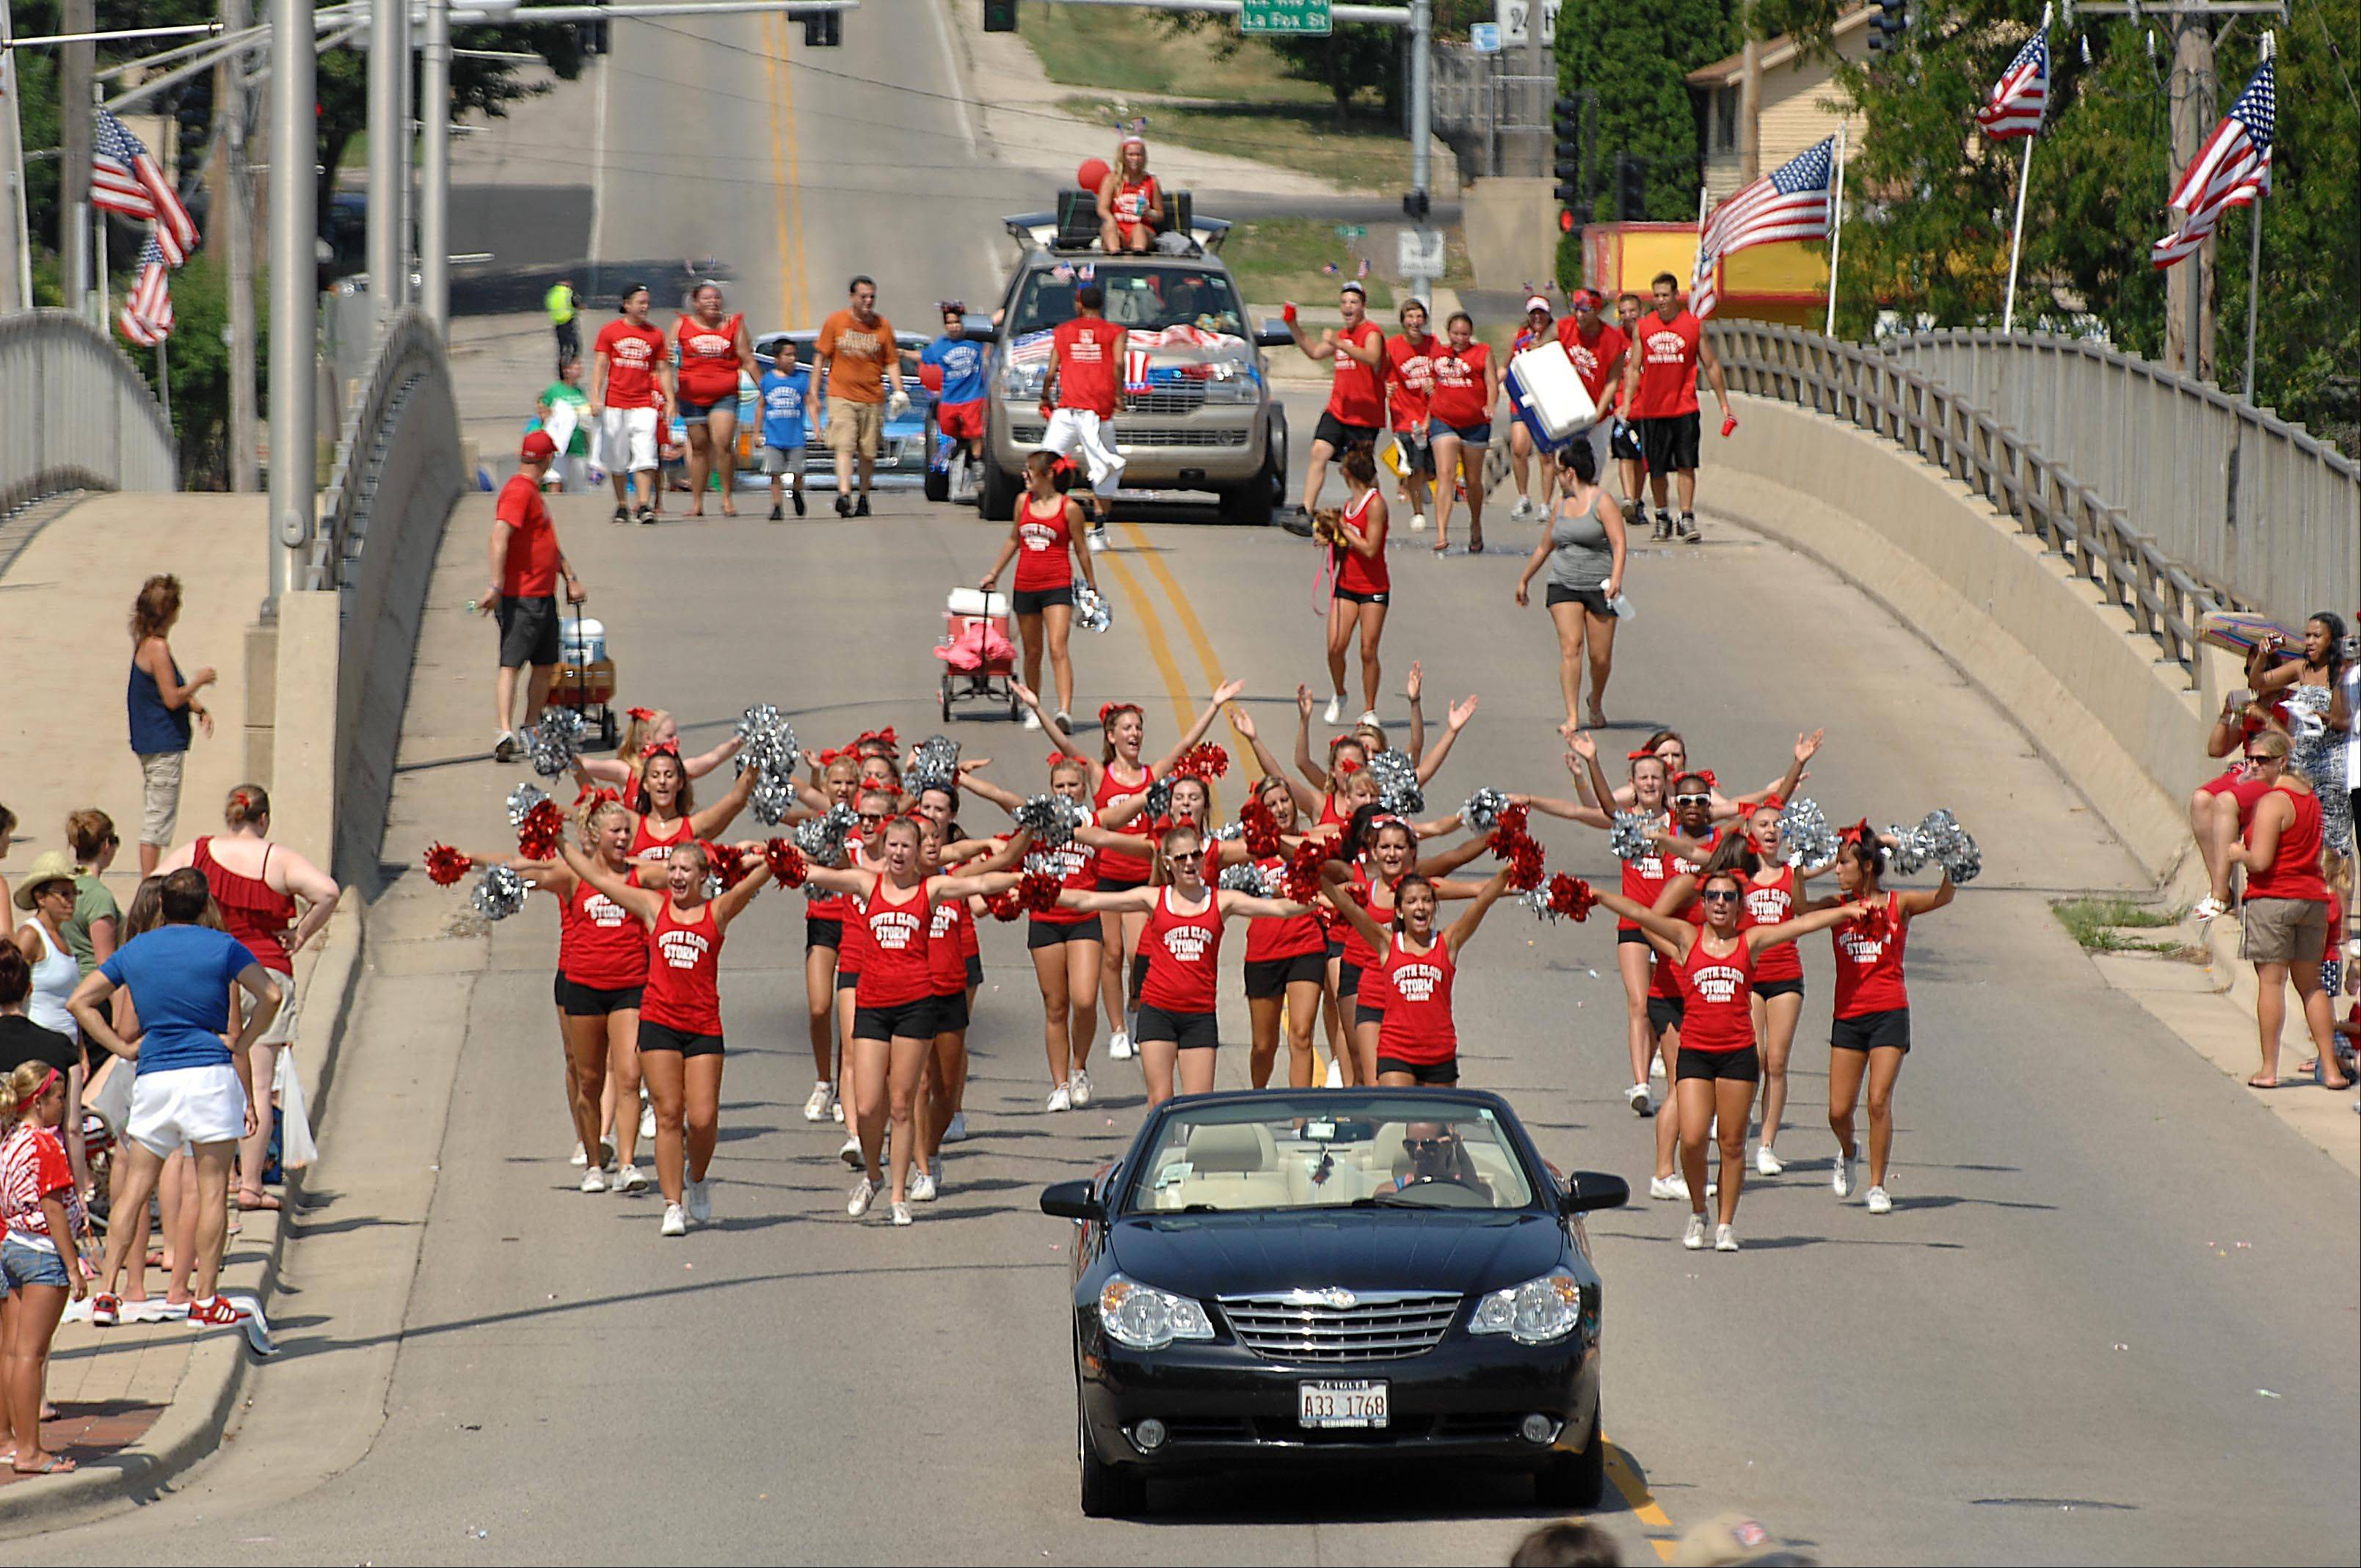 The South Elgin High School cheerleaders march over the Fox River bridge Wednesday at the South Elgin Fourth of July parade.